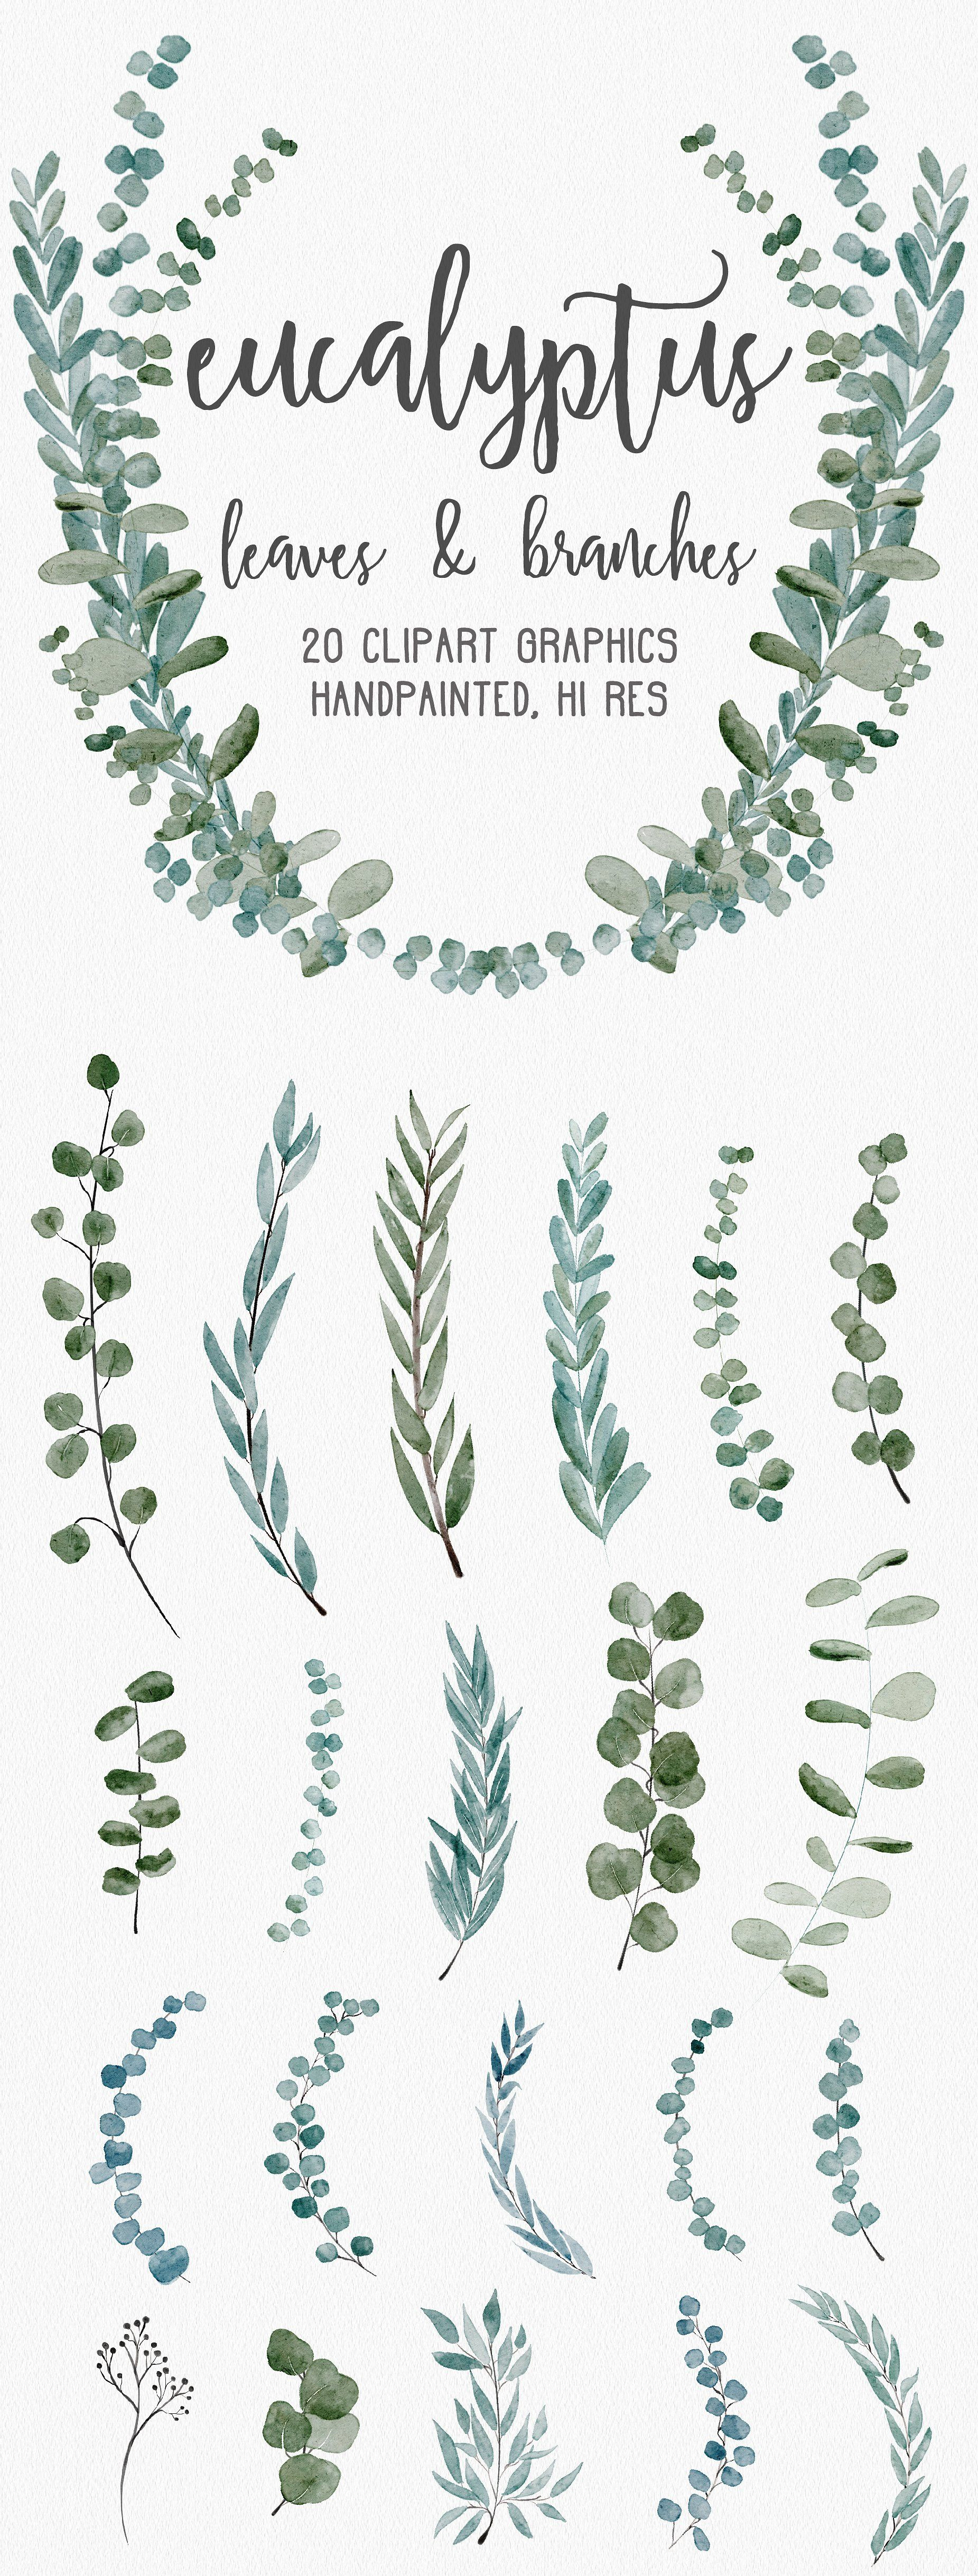 Eucalyptus Greenery Clipart Graphics By Wooly Pronto On Creativemarket Graphic Design Watercolor Wreaths